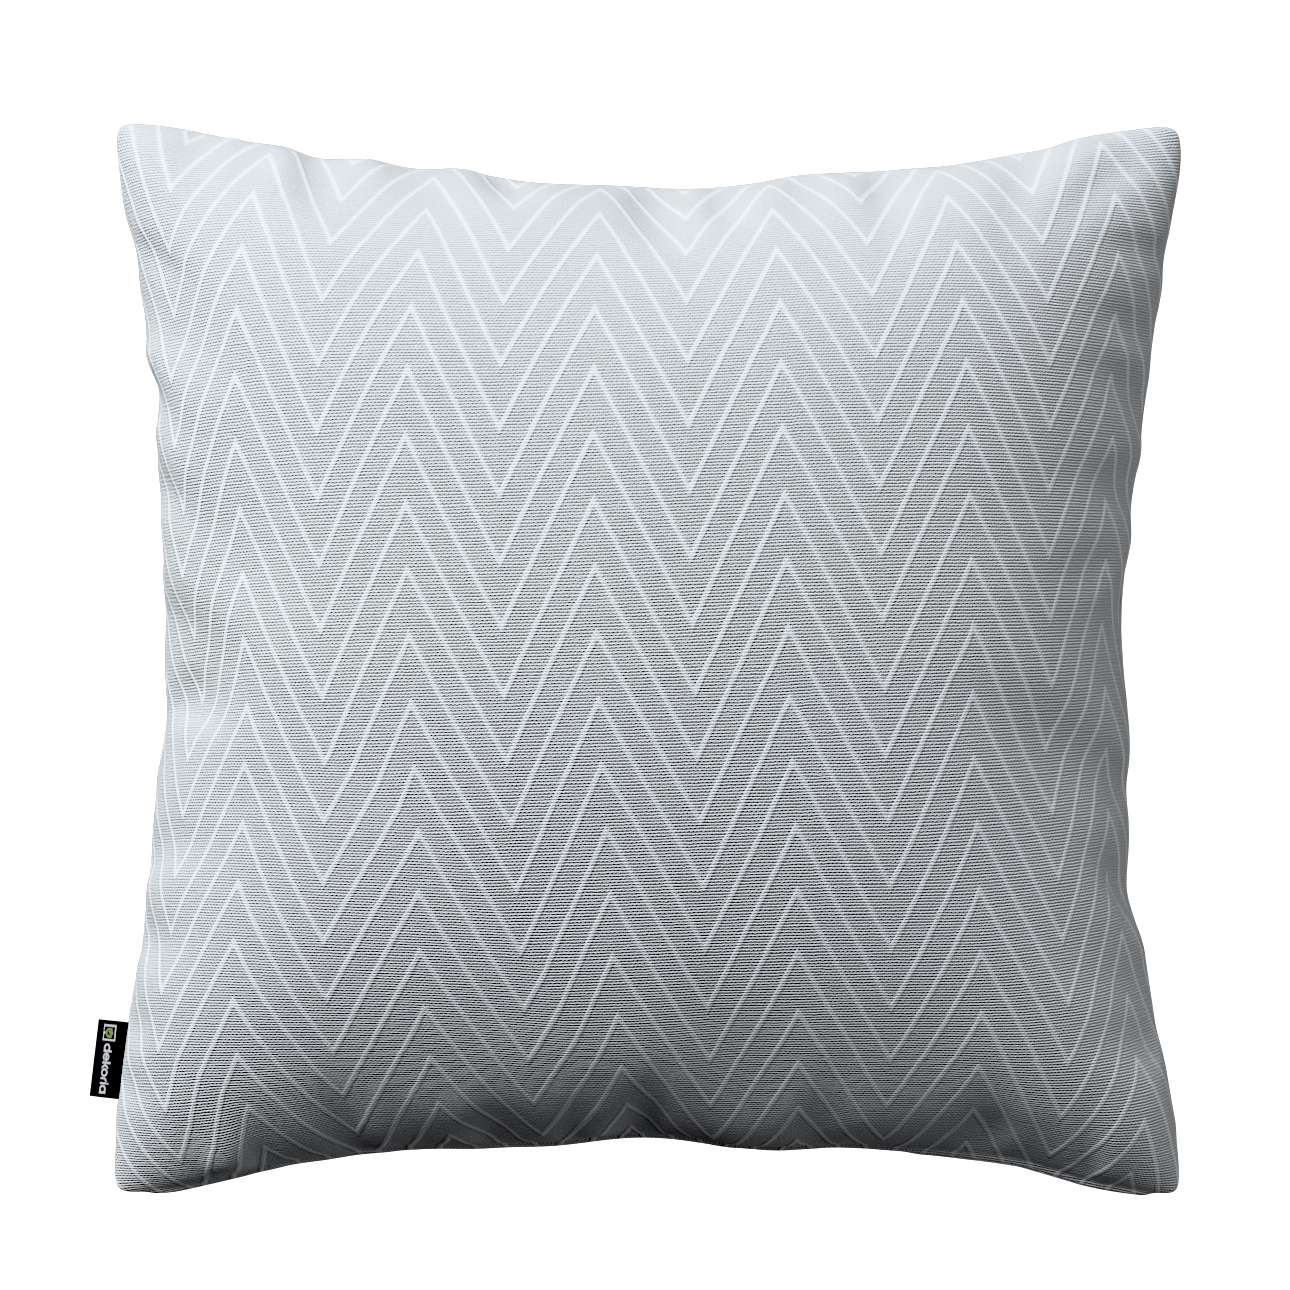 Kinga cushion cover 43 × 43 cm (17 × 17 inch) in collection Brooklyn, fabric: 137-87